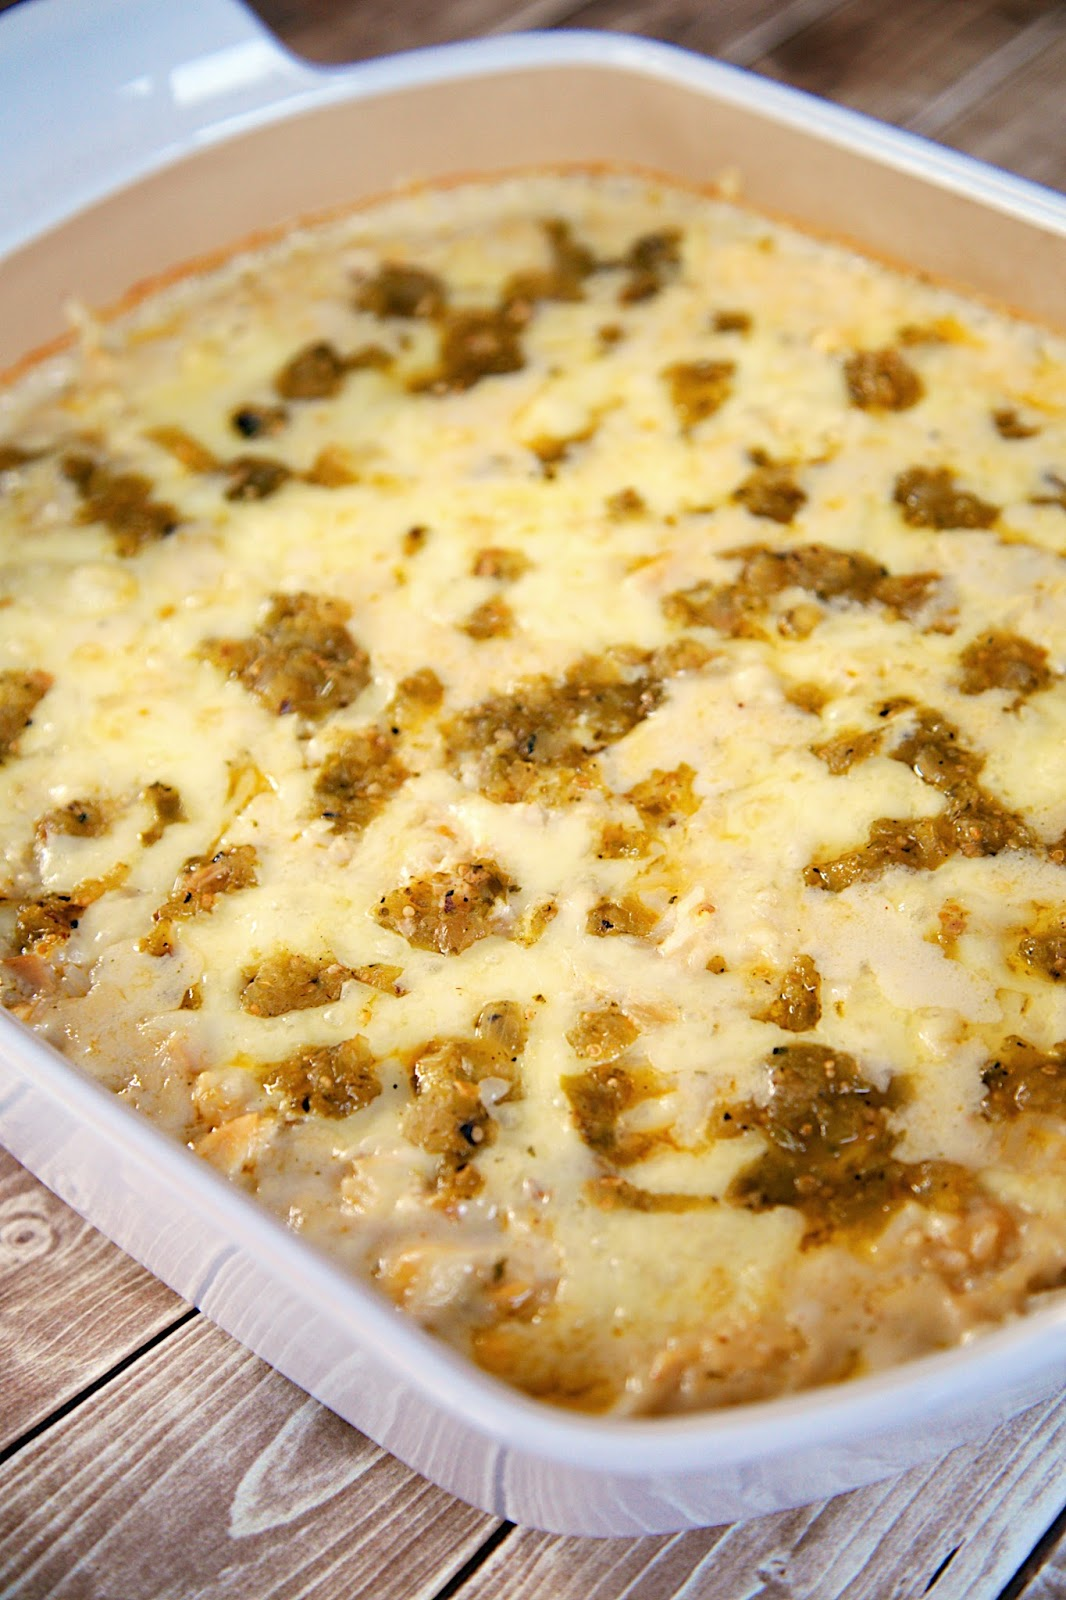 Salsa Verde Chicken and Rice Bake Recipe - chicken, cheese and rice tossed in a creamy salsa verde sour cream sauce. Ready in 20 minutes! No cream of anything soup!! We gobbled this up! Quick and delicious Mexican recipe.